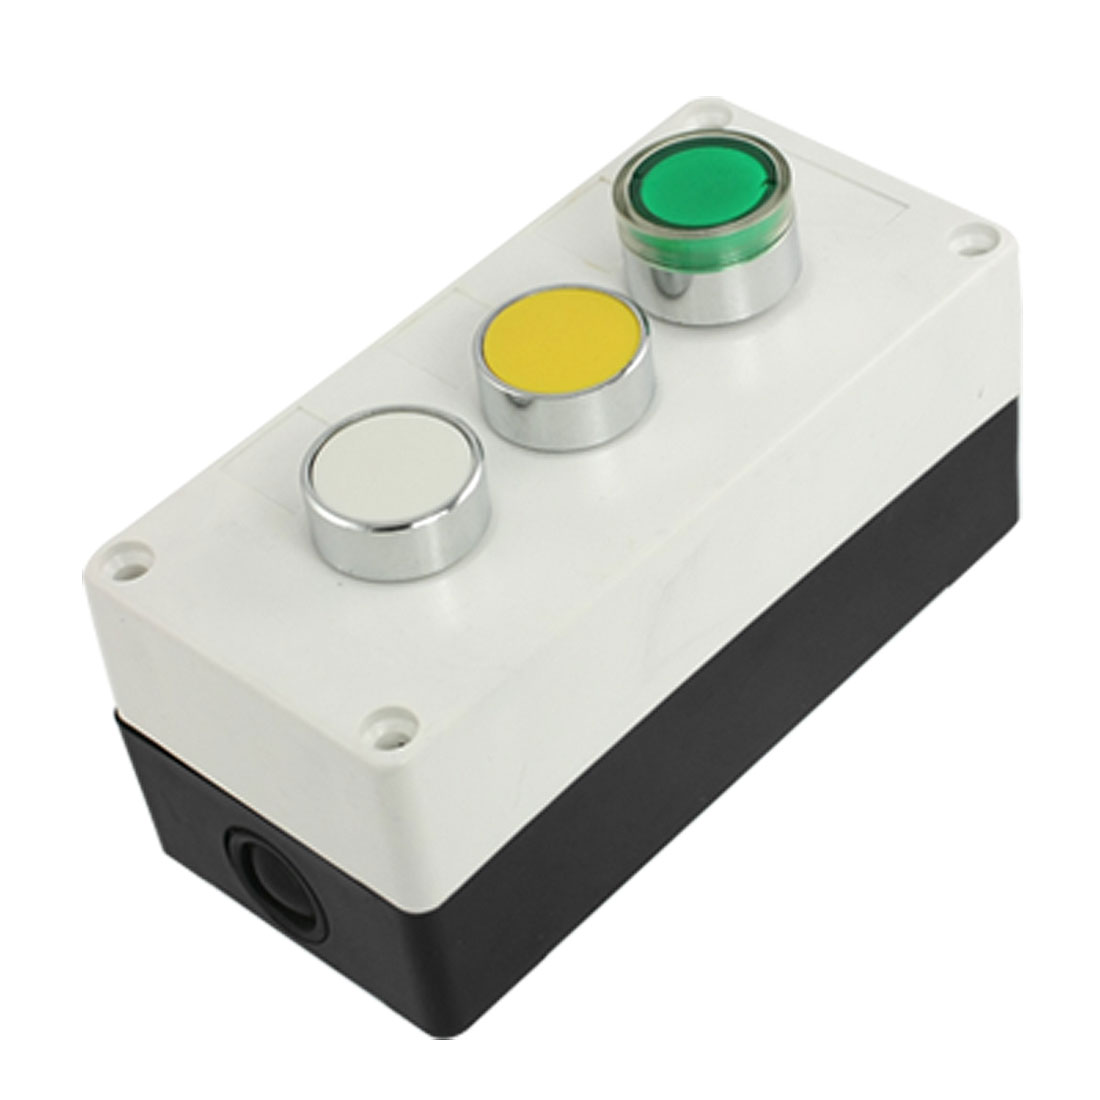 Yellow-White-Green-Round-Cap-Momentary-Switch-Push-Button-Control-Box-AC-240V-3A